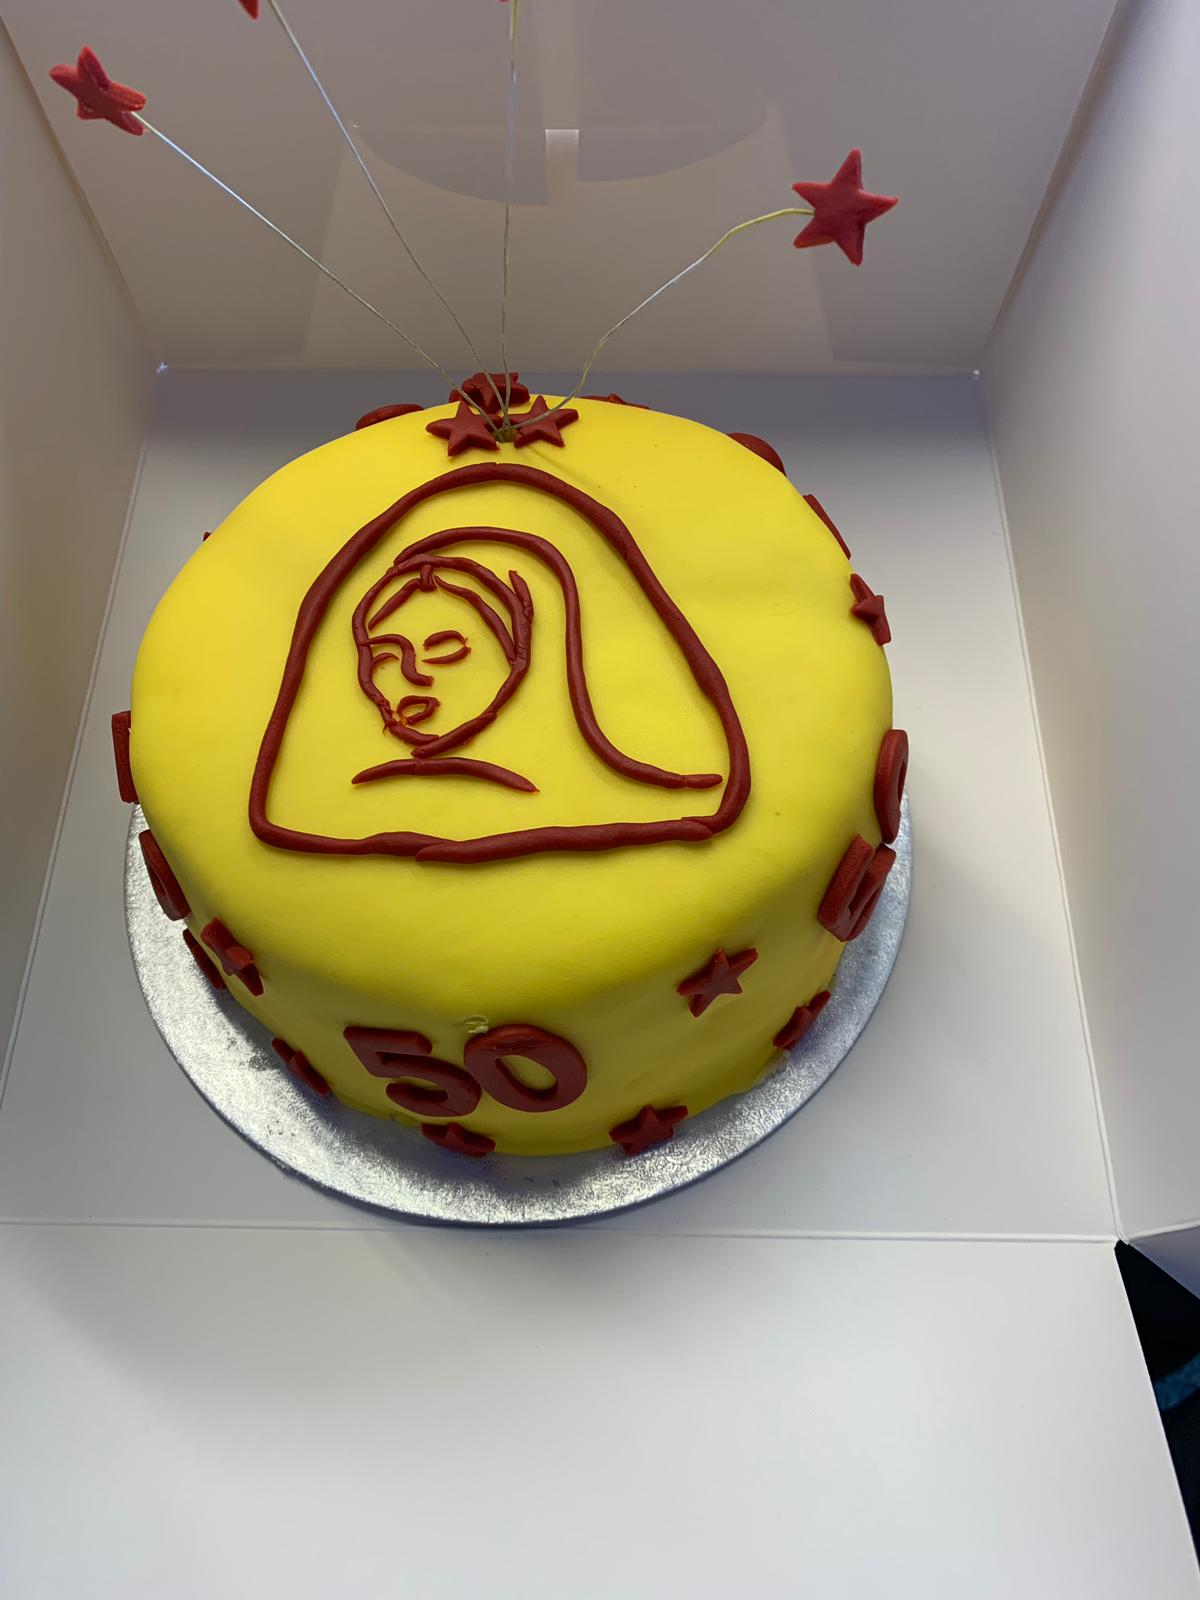 50th Anniversary Baking Competition – Our Lady of Mount